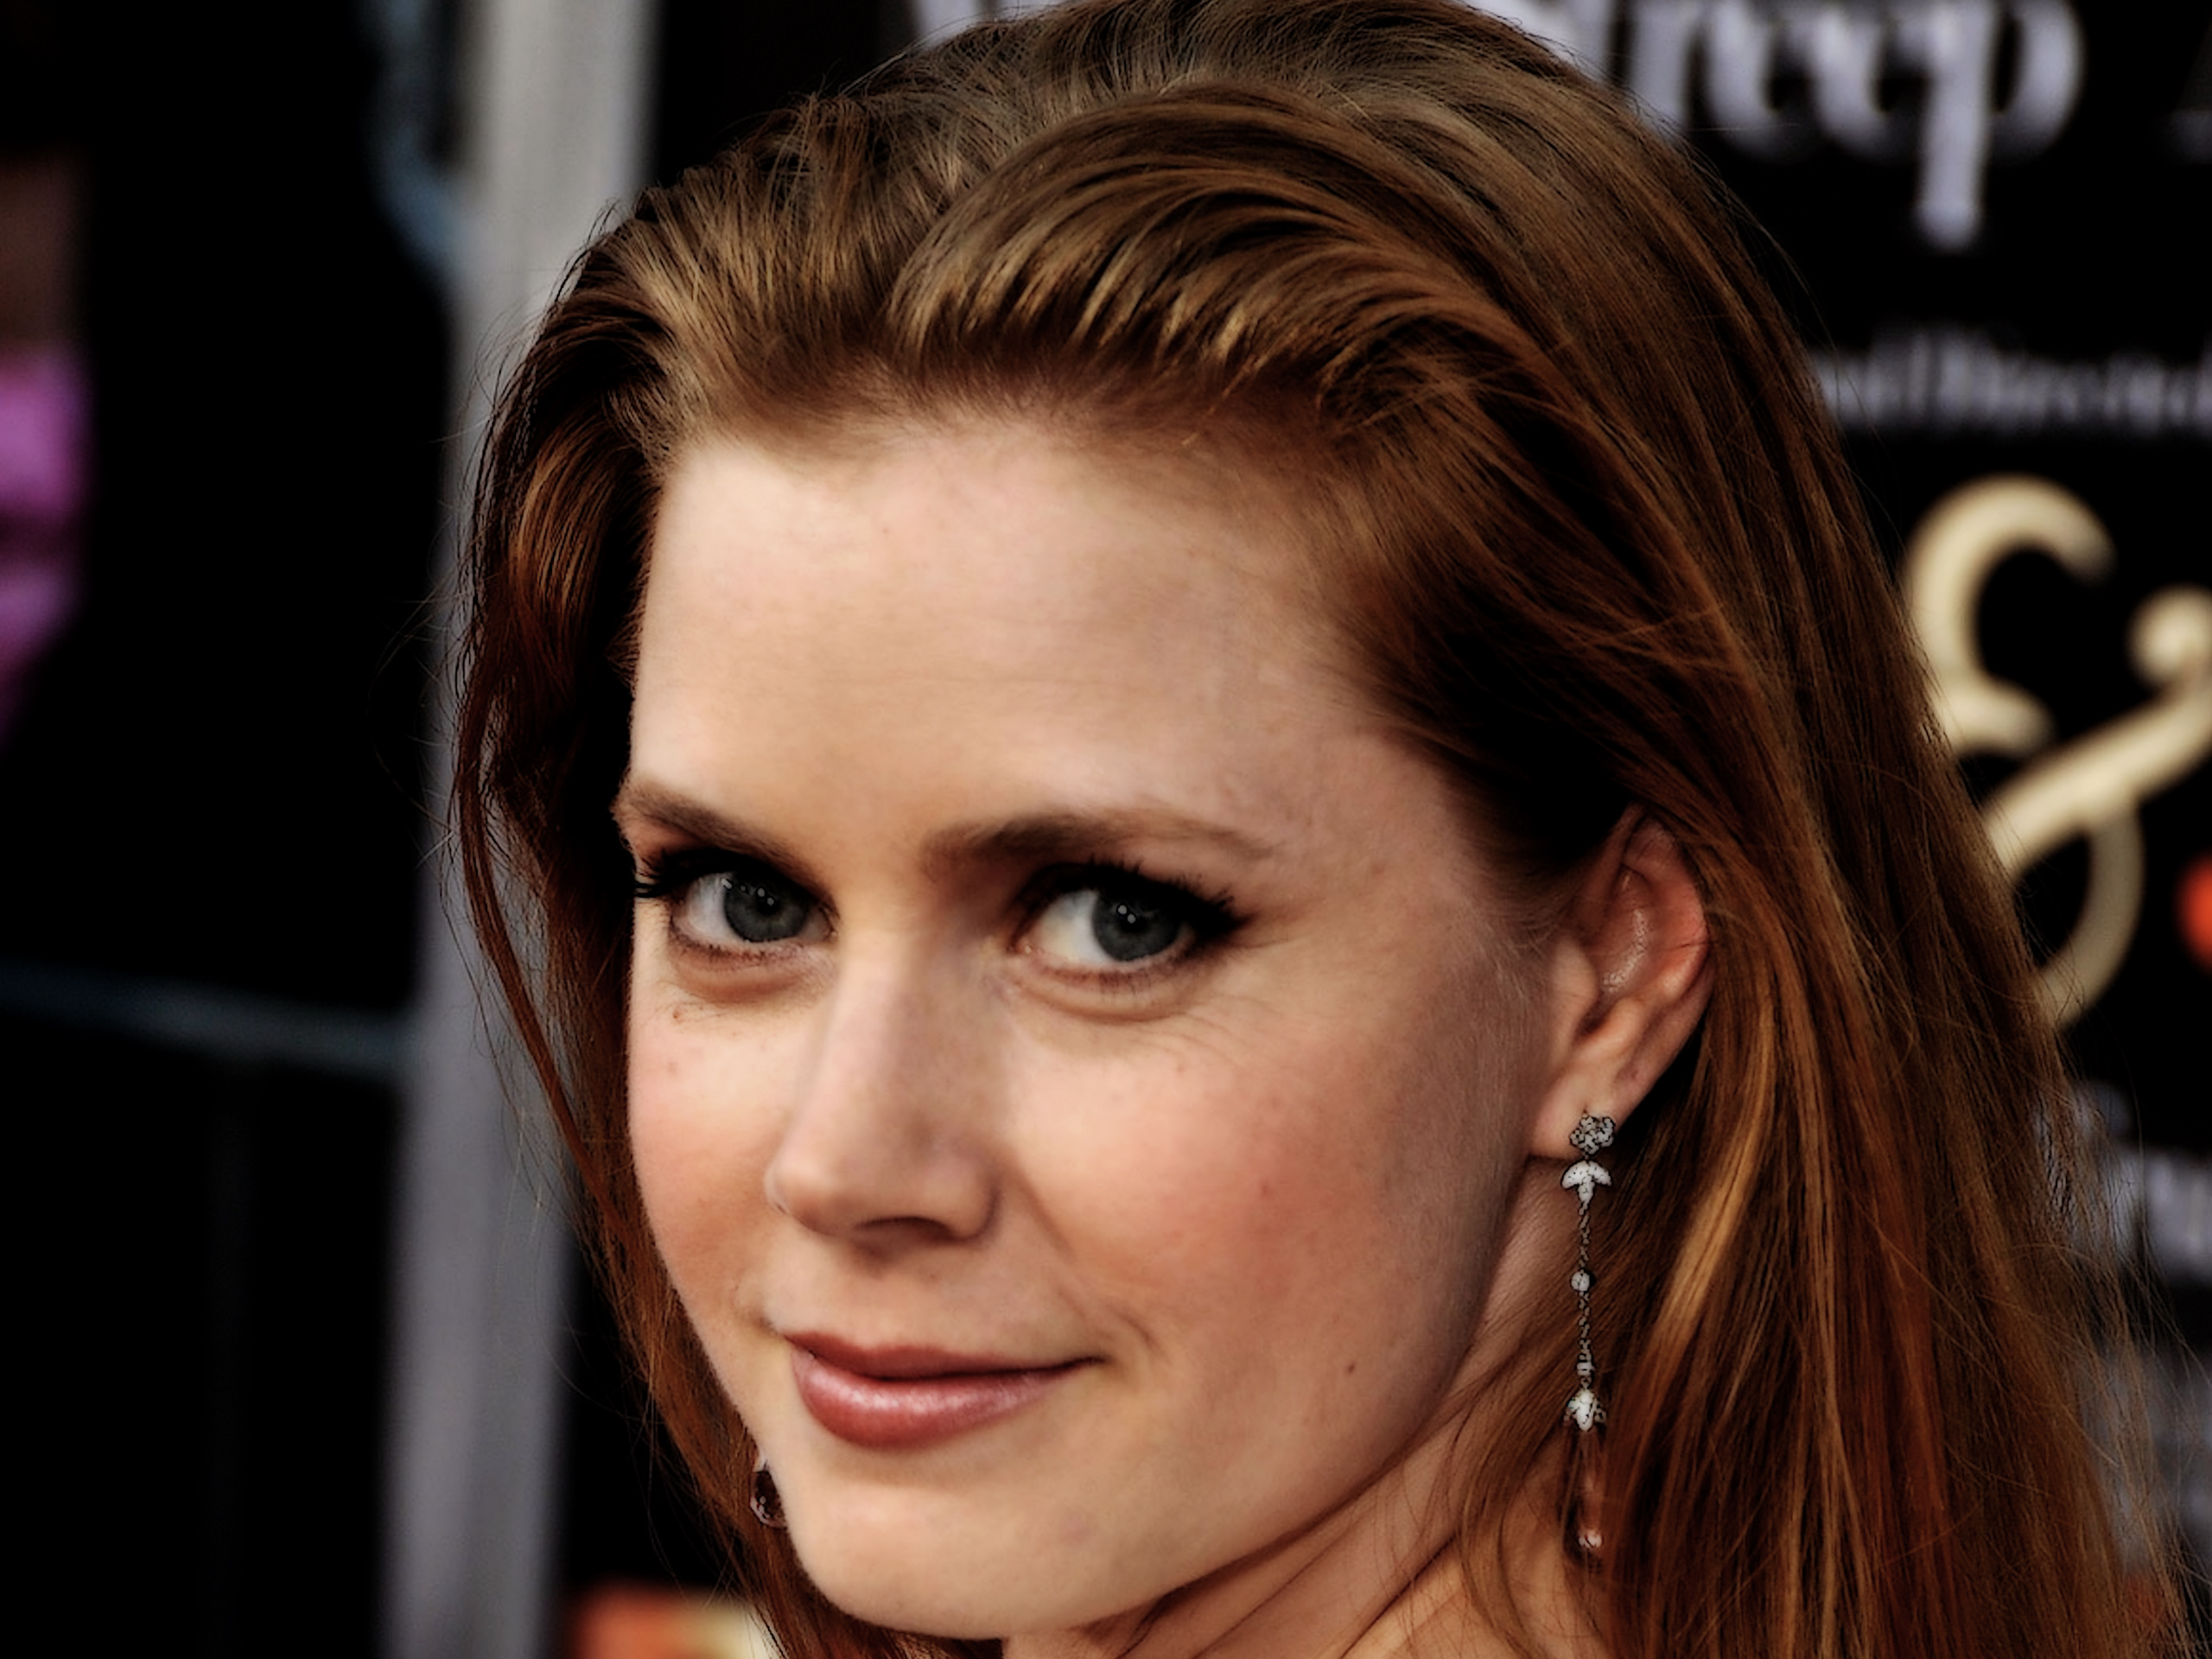 Amy Adams Fantastic Eye And Smile Look Pose Hd Background Mobile Wallpaper Free Desktop